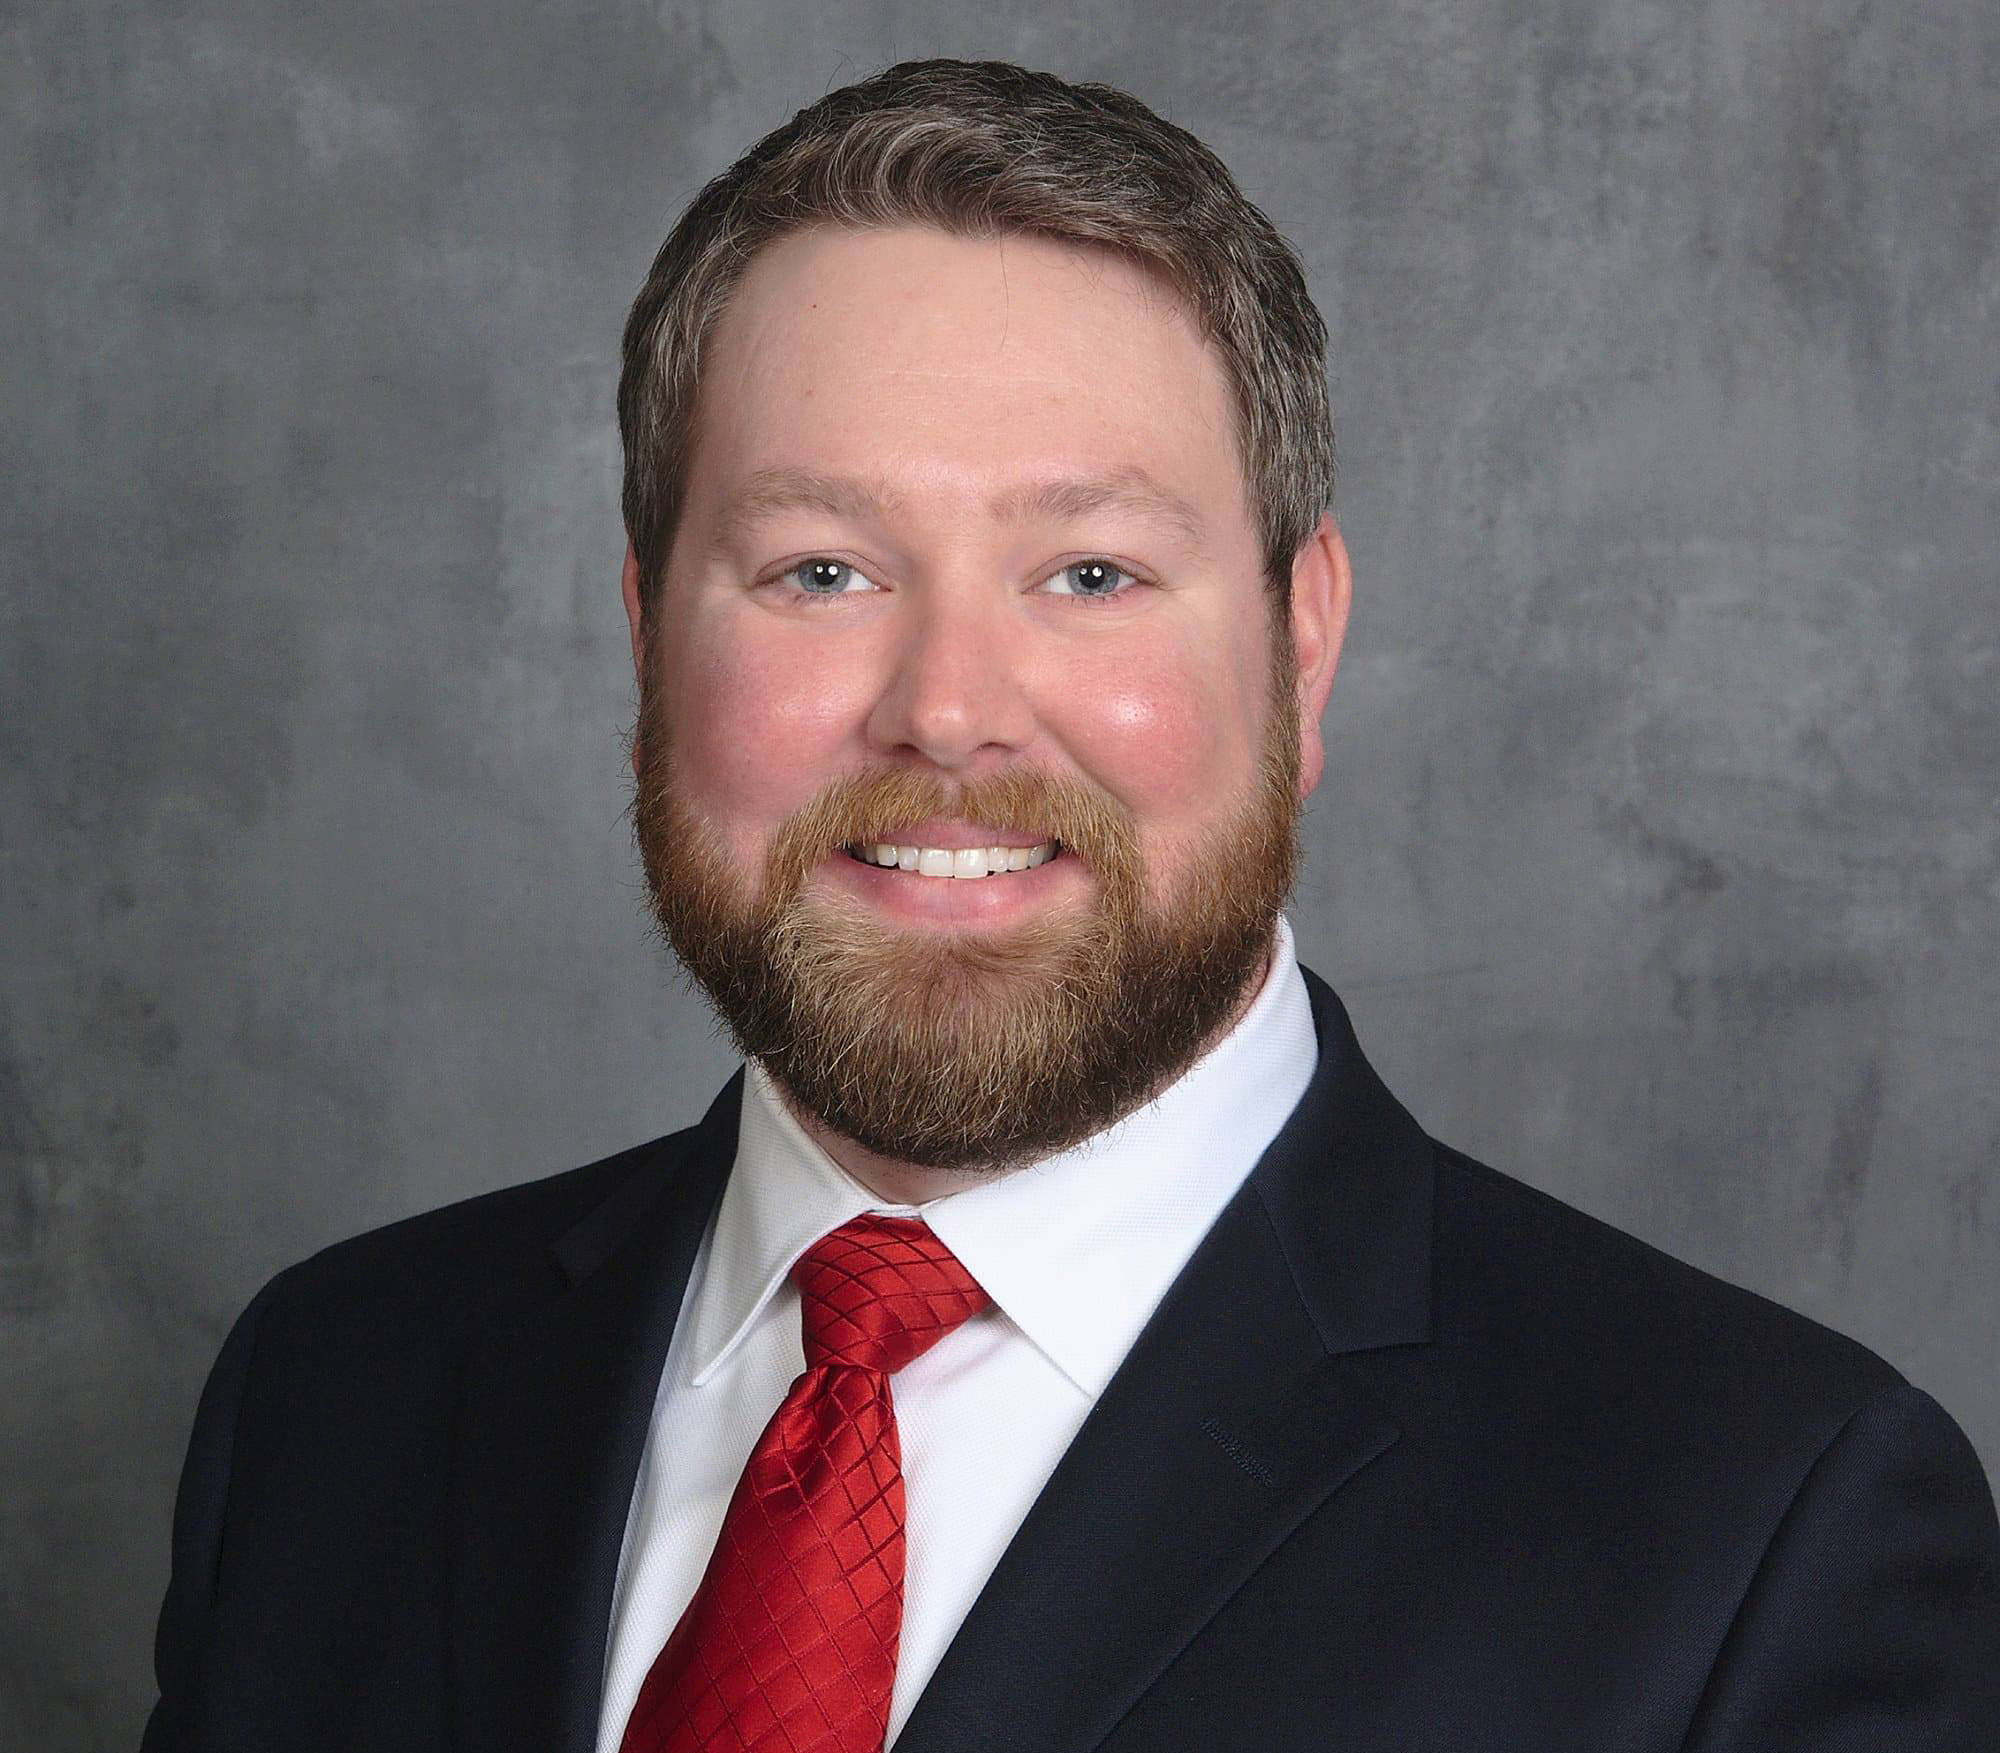 Harry Benton, Illinois House 97th District Democratic nominee, candidate questionnaire, 2020 election